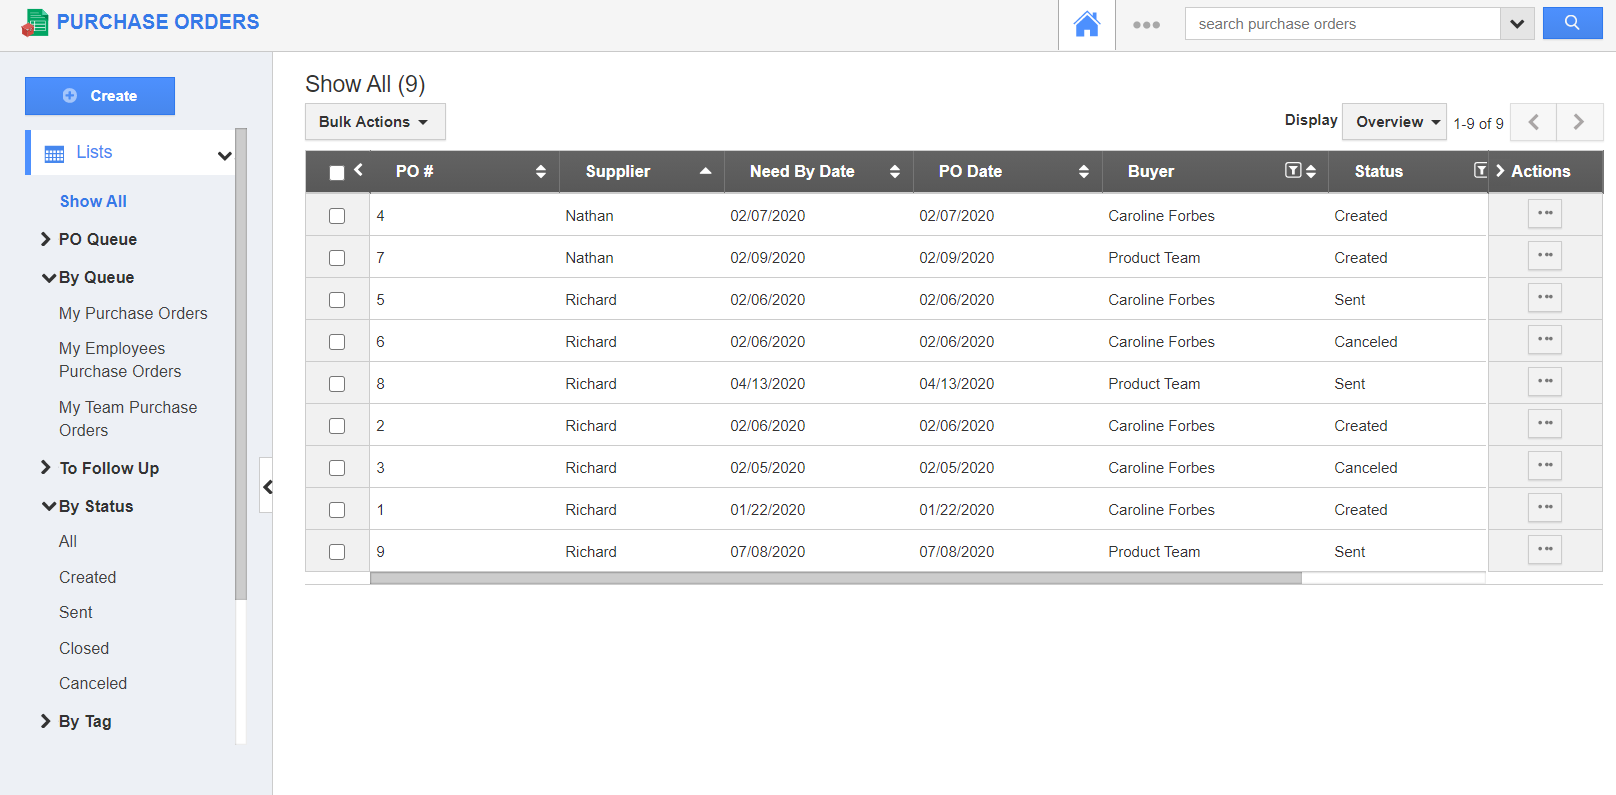 Purchase Orders App